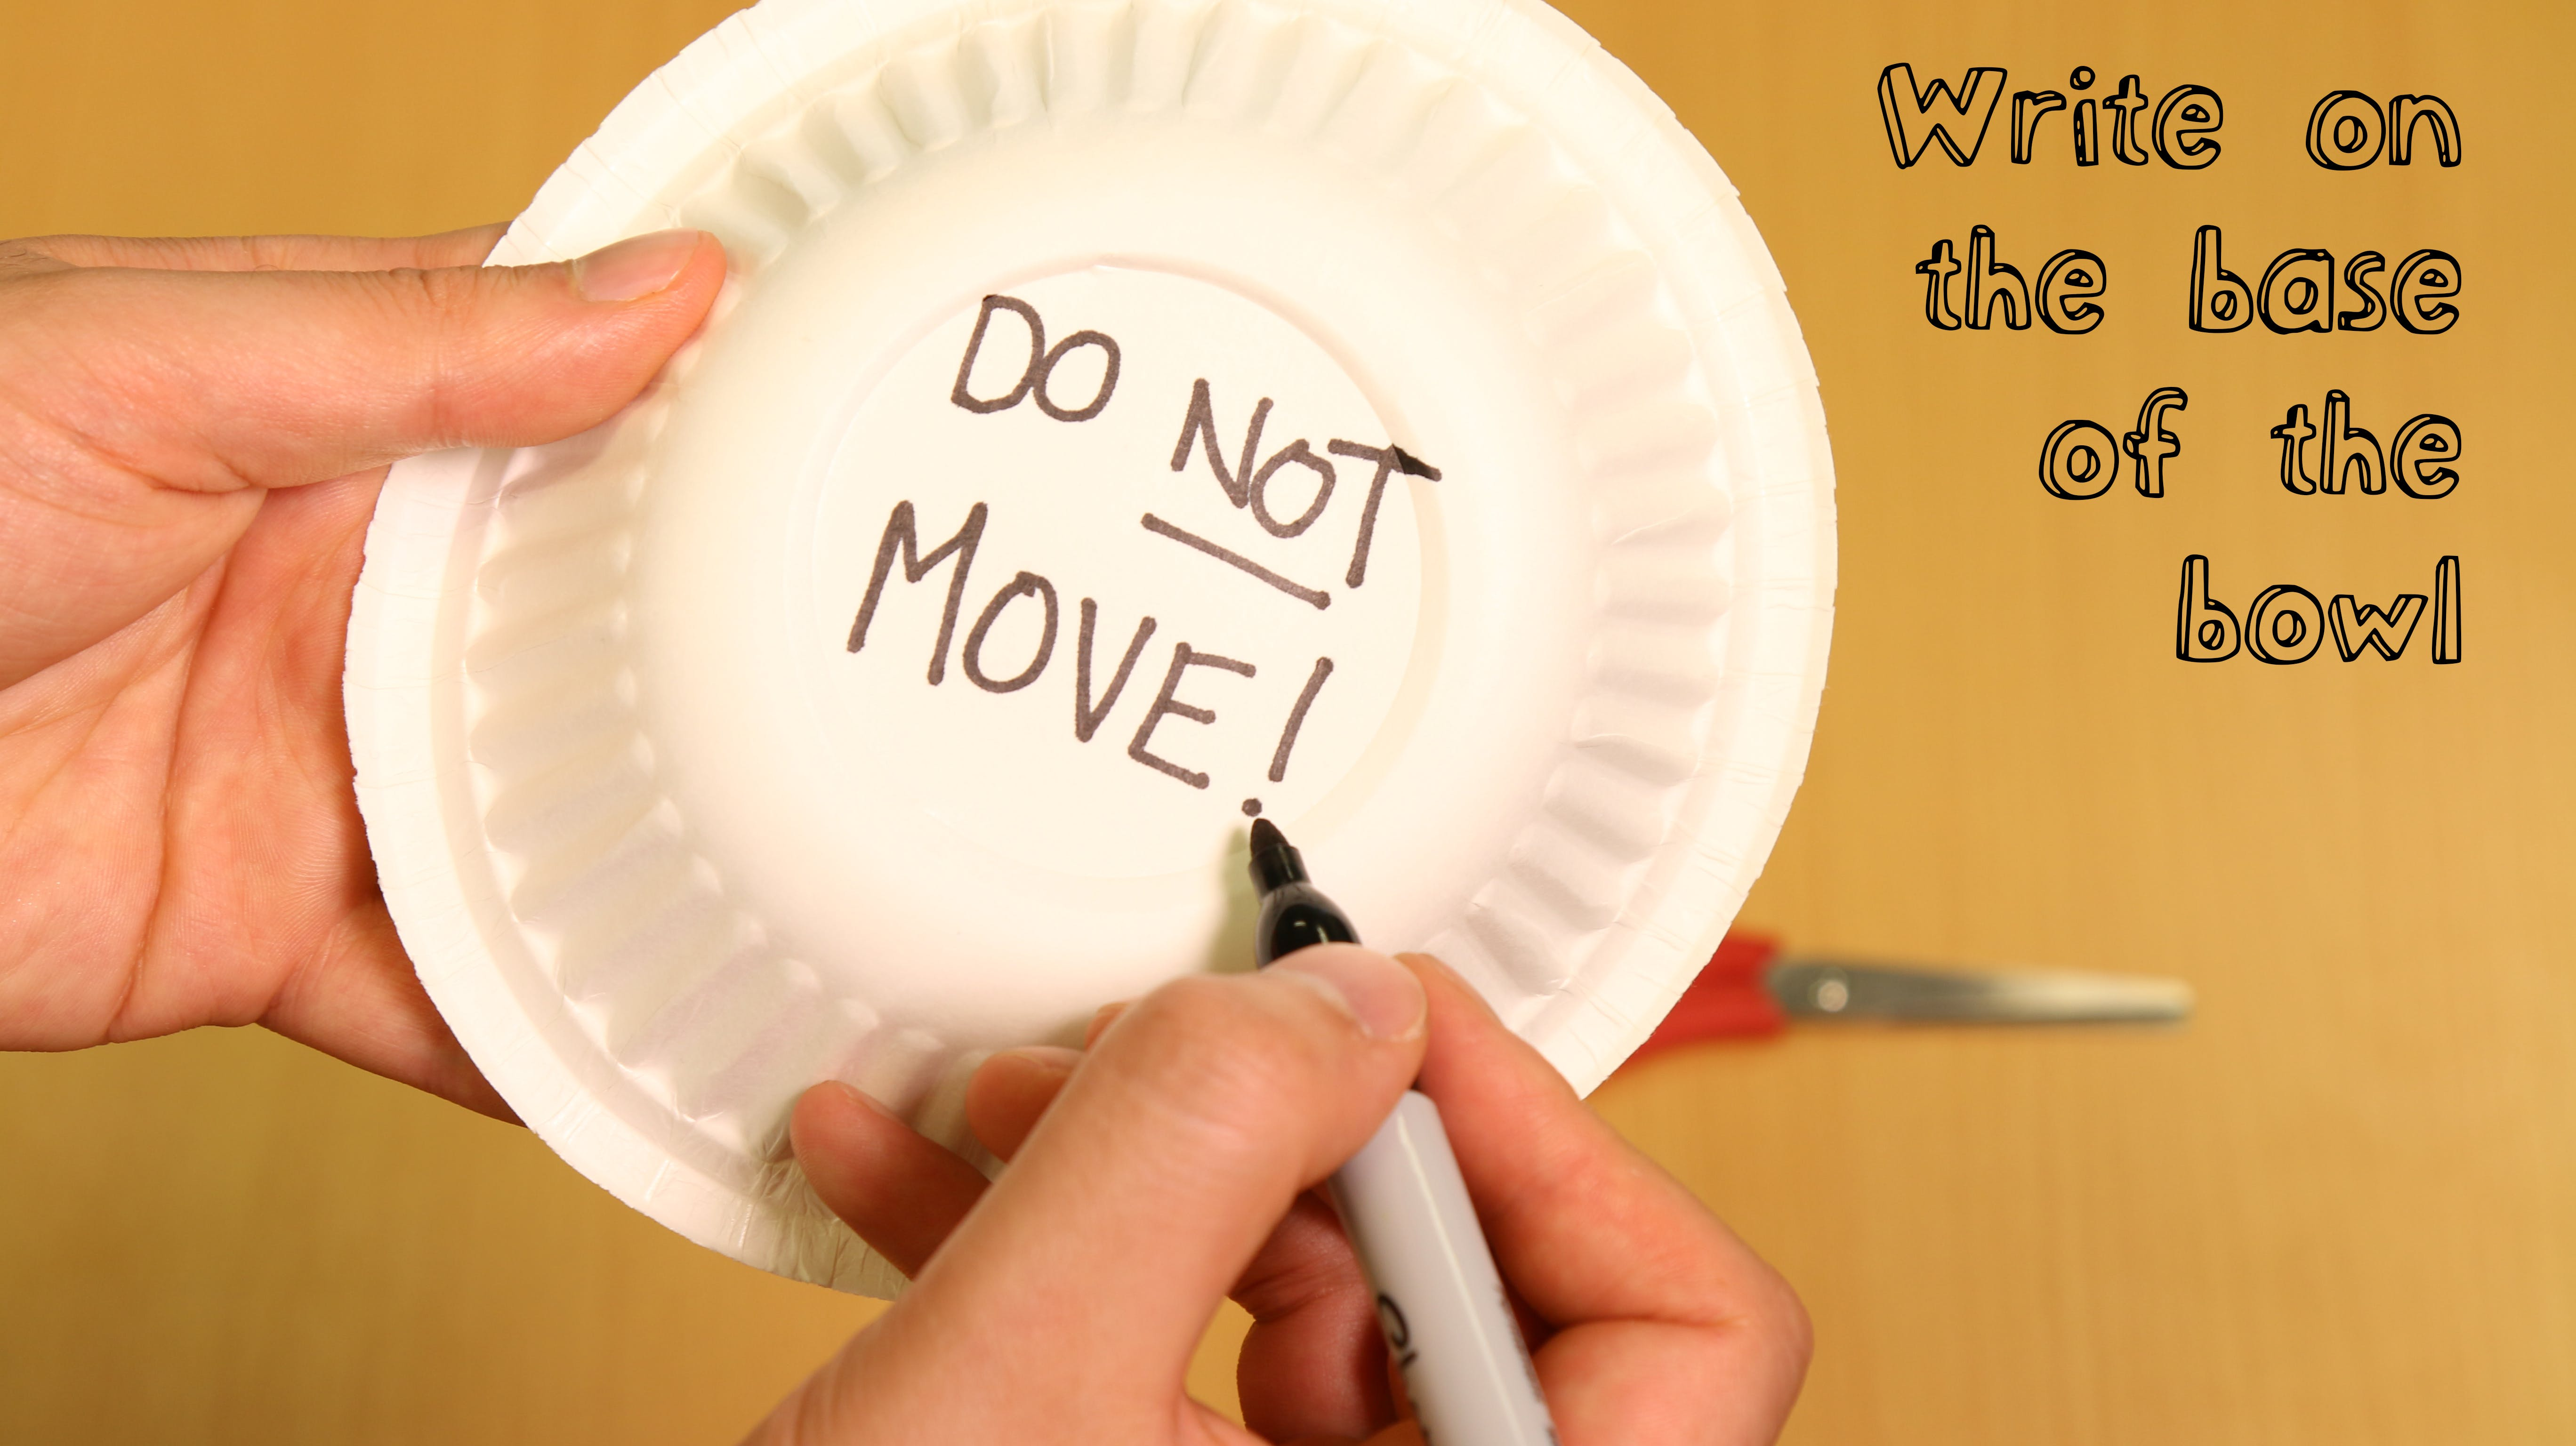 "Underneath the bowl, write ""Do NOT Move!"" in felt tip pen."